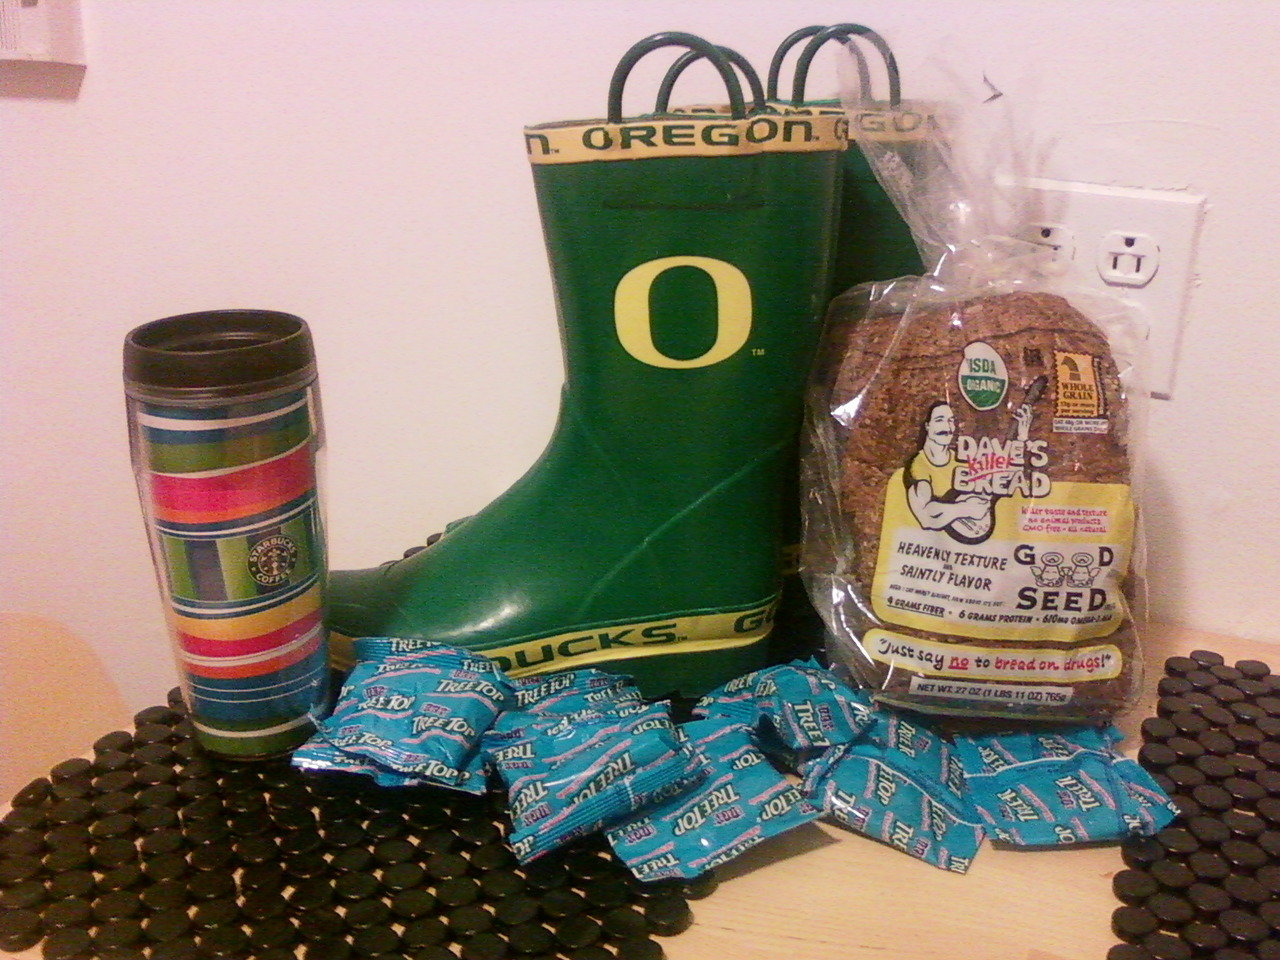 "What's better than Christmas presents? Getting boxes of your own things mailed to you from coast to coast! Today's arrivals? RAIN BOOTS!!! My Oregon duck rain boots to be exact. You can bet I'm going to be repping my ducks to and from the subway every rainy day from here on out!    It gets even better though.. Guess what other surprises were in the box? DAVE'S KILLER BREAD!!! Aww, I'd say today was a good day and that my Mom is pretty darn awesome! There was also some random things of mine, earrings, pens, a coffee tumbler, and lots of fruit snacks. Scooter was pretty excited about the fruit snacks too I think, because I caught him trying to run off with more than one package. Which brings me to another discovery today. My dog is a total hoarder, but that can be its own blog post in itself.   Another reason today was a great day was because it was my one month anniversary of being in New York! I am officially surviving the New York life and doing it well! After a month I think it is a good time to reflect on some of the biggest misconceptions I've come before and during my move here and let you know how they are rolling out.   1.) ""Why would you want to move to New York, it's soooo expensive!"": I will not deny that New York is definitely not the cheapest place to live. I won't try and tell you that the statistics are wrong, but what I will tell you is if you have a steady job and realistic expectations it can be totally doable. Apartment standards in New York are different than anywhere I've ever lived. You will probably pay double the amount for half of the space you would be used to in a typical Portland or Seattle apartment without the added luxuries. Most of the buildings that are more affordable are in Pre or Post WWII buildings that are not always equipped with elevators, microwaves, or dishwashers but realize that your friends are all probably living in about the same situations too. It's been a month though and we have been completely fine without a microwave, dishwasher, and cable tv at that. What I'm trying to say is yes, rent is very high in New York, but it is still possible to find a cute, small apartment in a safe neighborhood and still manage to have some money left over for food and exploring.   If it is something you want to attempt though, my advice is to have realistic expectations. Prioritize what is important to you in a living situation and set a realistic price range. Rent is the highest price difference when moving. Food can be expensive as well, but if you minimize the amount of take-out food you order and score deals by trying different grocery stores (like Trader Joes) then it won't be such a huge difference. The great thing about New York too is that there are a ton of events going on all of the time (a lot of which are free). My final point being, yes the city is expensive, but if you set a budget and are smart with your money then you should have no issues.   2.) ""But New Yorkers are so mean!"": Another misconception I faced when moving was that all New Yorkers were rude and mean people. Over the course of the last month, I can truthfully say that I think the opposite is true. Granted, this is my personal experience and I am by no means saying that the ""mean New Yorker"" stereotype doesn't hold true sometimes. From my experience though, I have yet to have an awful experience with anyone. People in the city are busy and might not always talk to you in passing, but if you give a smile I have always gotten one back in return. I can honestly say that I've felt more welcomed by New Yorkers here than I often did in Portland. If I stop to pick up an outfit on my way home someone is chatting up with me in the dressing room and asking for my style advice. If I'm grocery shopping alone the employees are sure to strike up a conversation with me. Even when I meet people at a party or out people genuinely seem interested in meeting me and are excited about hearing my story. I don't know if I'm the only one who has had this experience, but I really think that New Yorkers get an undeserving bad rep sometimes. Again, I've only been here a month, but I can tell you I've been shocked of how friendly the people have been to me during my stay.   3.) ""You're not taking your car?! How will you survive!"": I've had a car since I was 16 years old and a month ago I can admit I was a little apprehensive about not having a car either. Truth be told though, New York's public transportation is great! Besides my occasional mix-up on a subway stop I feel like I have a good handle on getting myself where I need to go. Of course I still need some help from websites like HopStop to ensure I'm getting on the right train or bus, but overall the system is pretty easy to figure out.    After not having my car for a month too, I can't say I miss it too much (and I definitely don't miss paying for insurance or gas). I've been on enough cab rides, and bus rides to realize I probably wouldn't be the best New York driver anyways. Besides, rides by cabs can actually end of taking longer than a subway ride because of traffic. So although I probably wouldn't be okay with not having a car in the Northwest in New York it has been perfectly alright. I have yet to meet anyone here that does actually drive either so I don't feel like I'm missing out on too much.   Well there you have it! One month down, three misconceptions addressed and many more experiences and lessons to come. Stay tuned for more.   Cheers!"